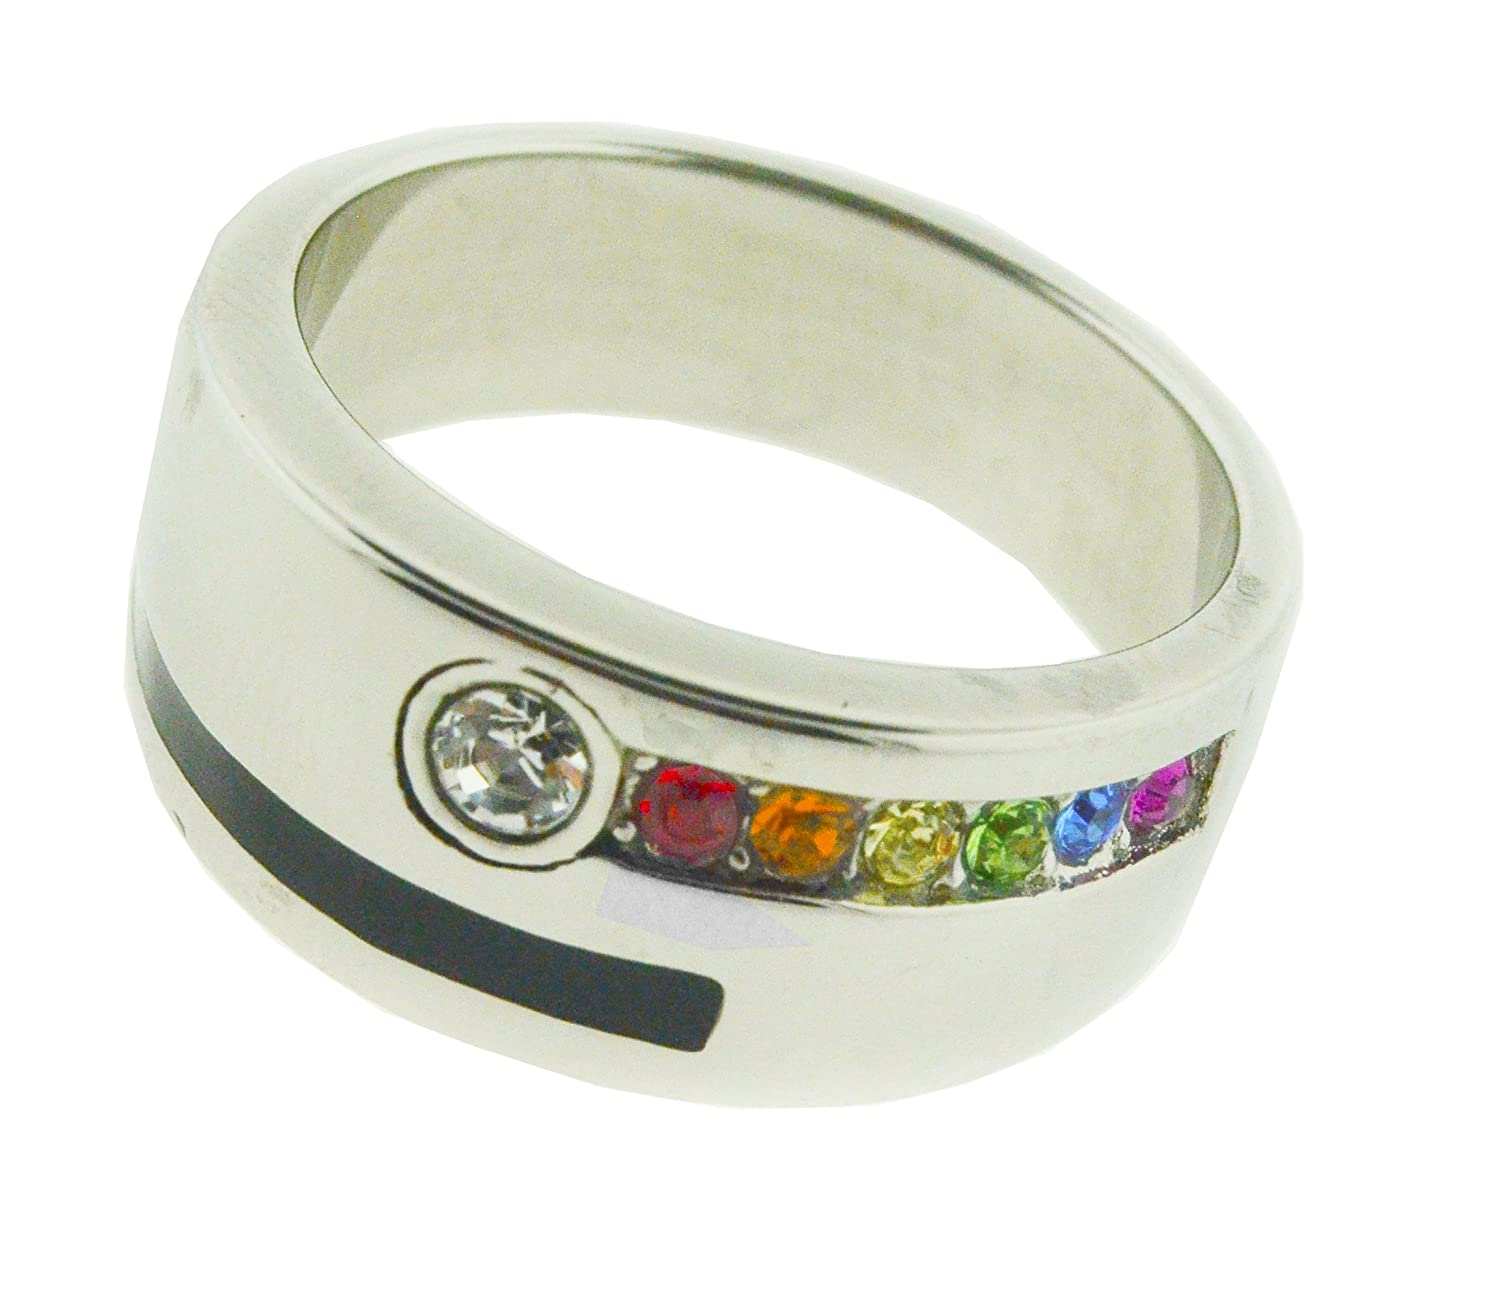 takayas rainbow jewelry zelda rings round ring my pin style wedding engagement custom